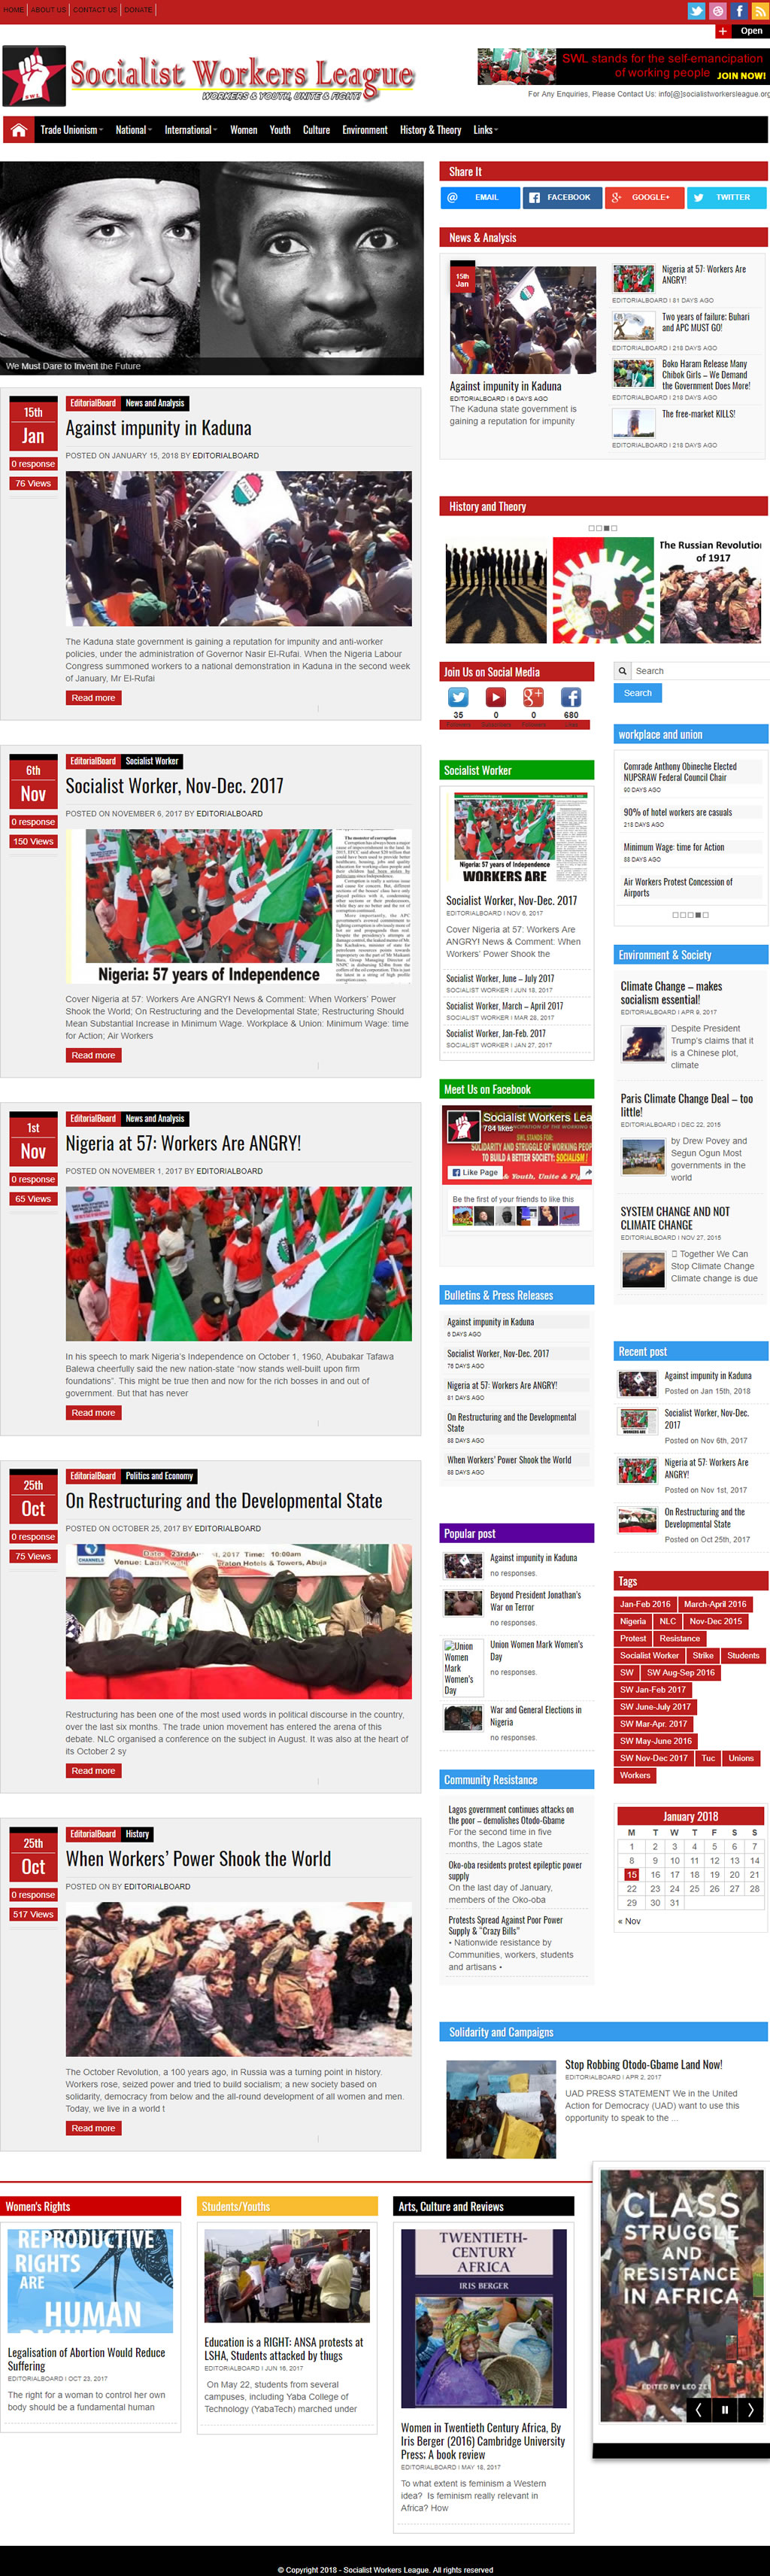 socialist workers league website designed by afeeshost